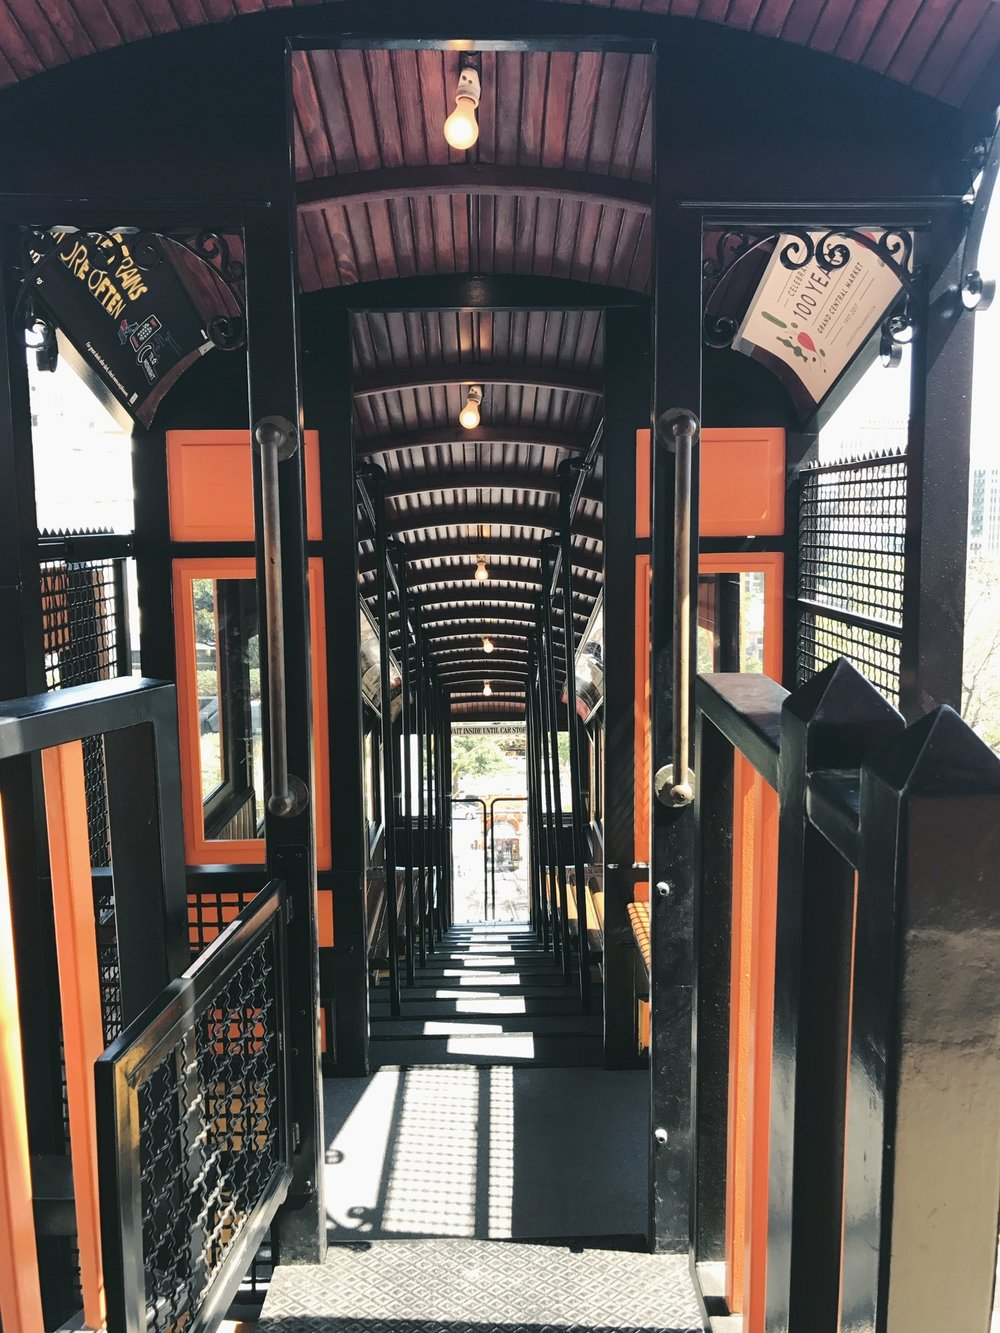 Inside one of the Angels Flight railcars